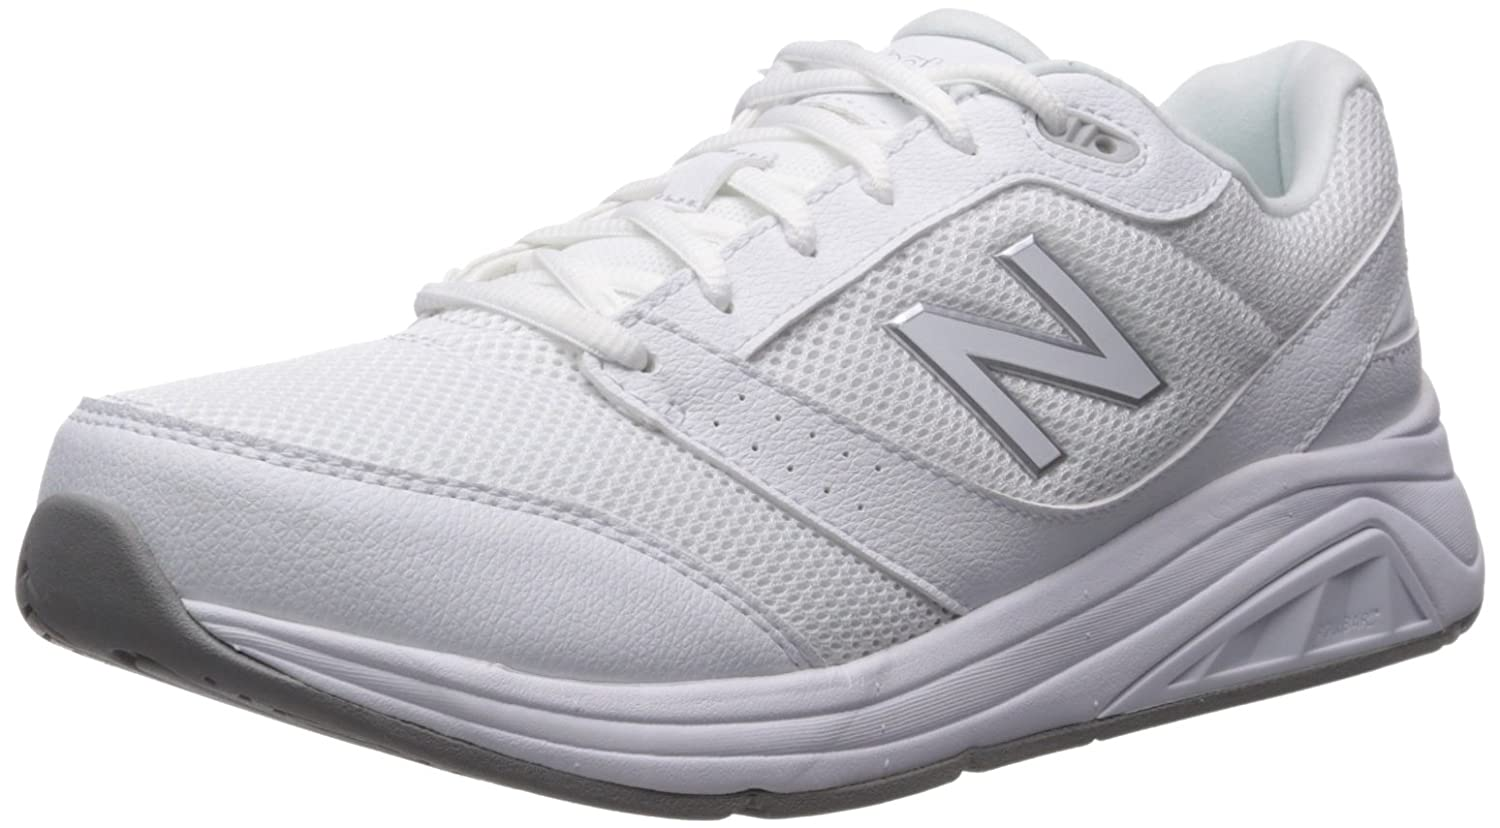 New Balance Women's Womens 928v3 Walking Shoe Walking Shoe B01MXNYSLC 10.5 D US|White/White